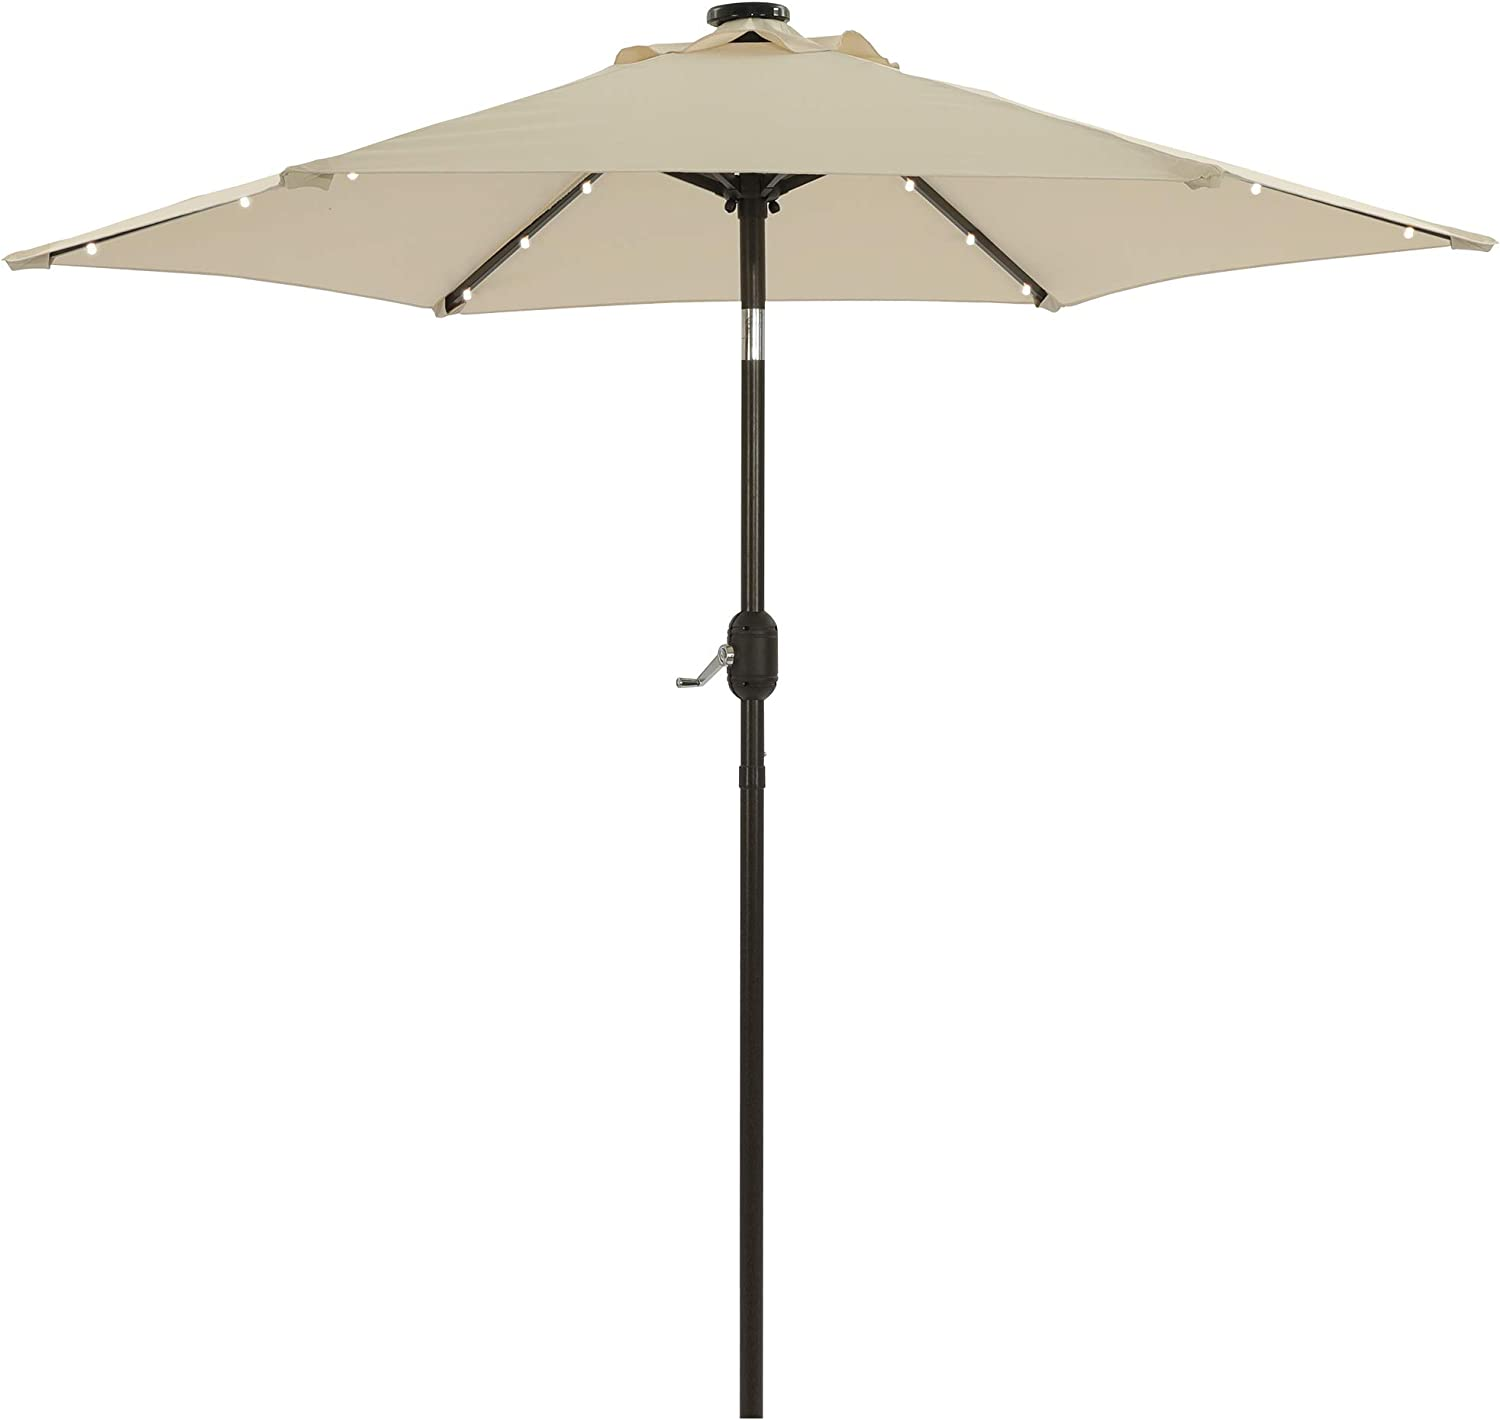 Aok Garden 7.5 ft Solar Patio Umbrella with 18 LED Lights Outdoor Table Market Umbrella with Push Button Tilt and Crank 6 Sturdy Aluminum Ribs for Deck, Lawn, Pool& Backyard, Beige